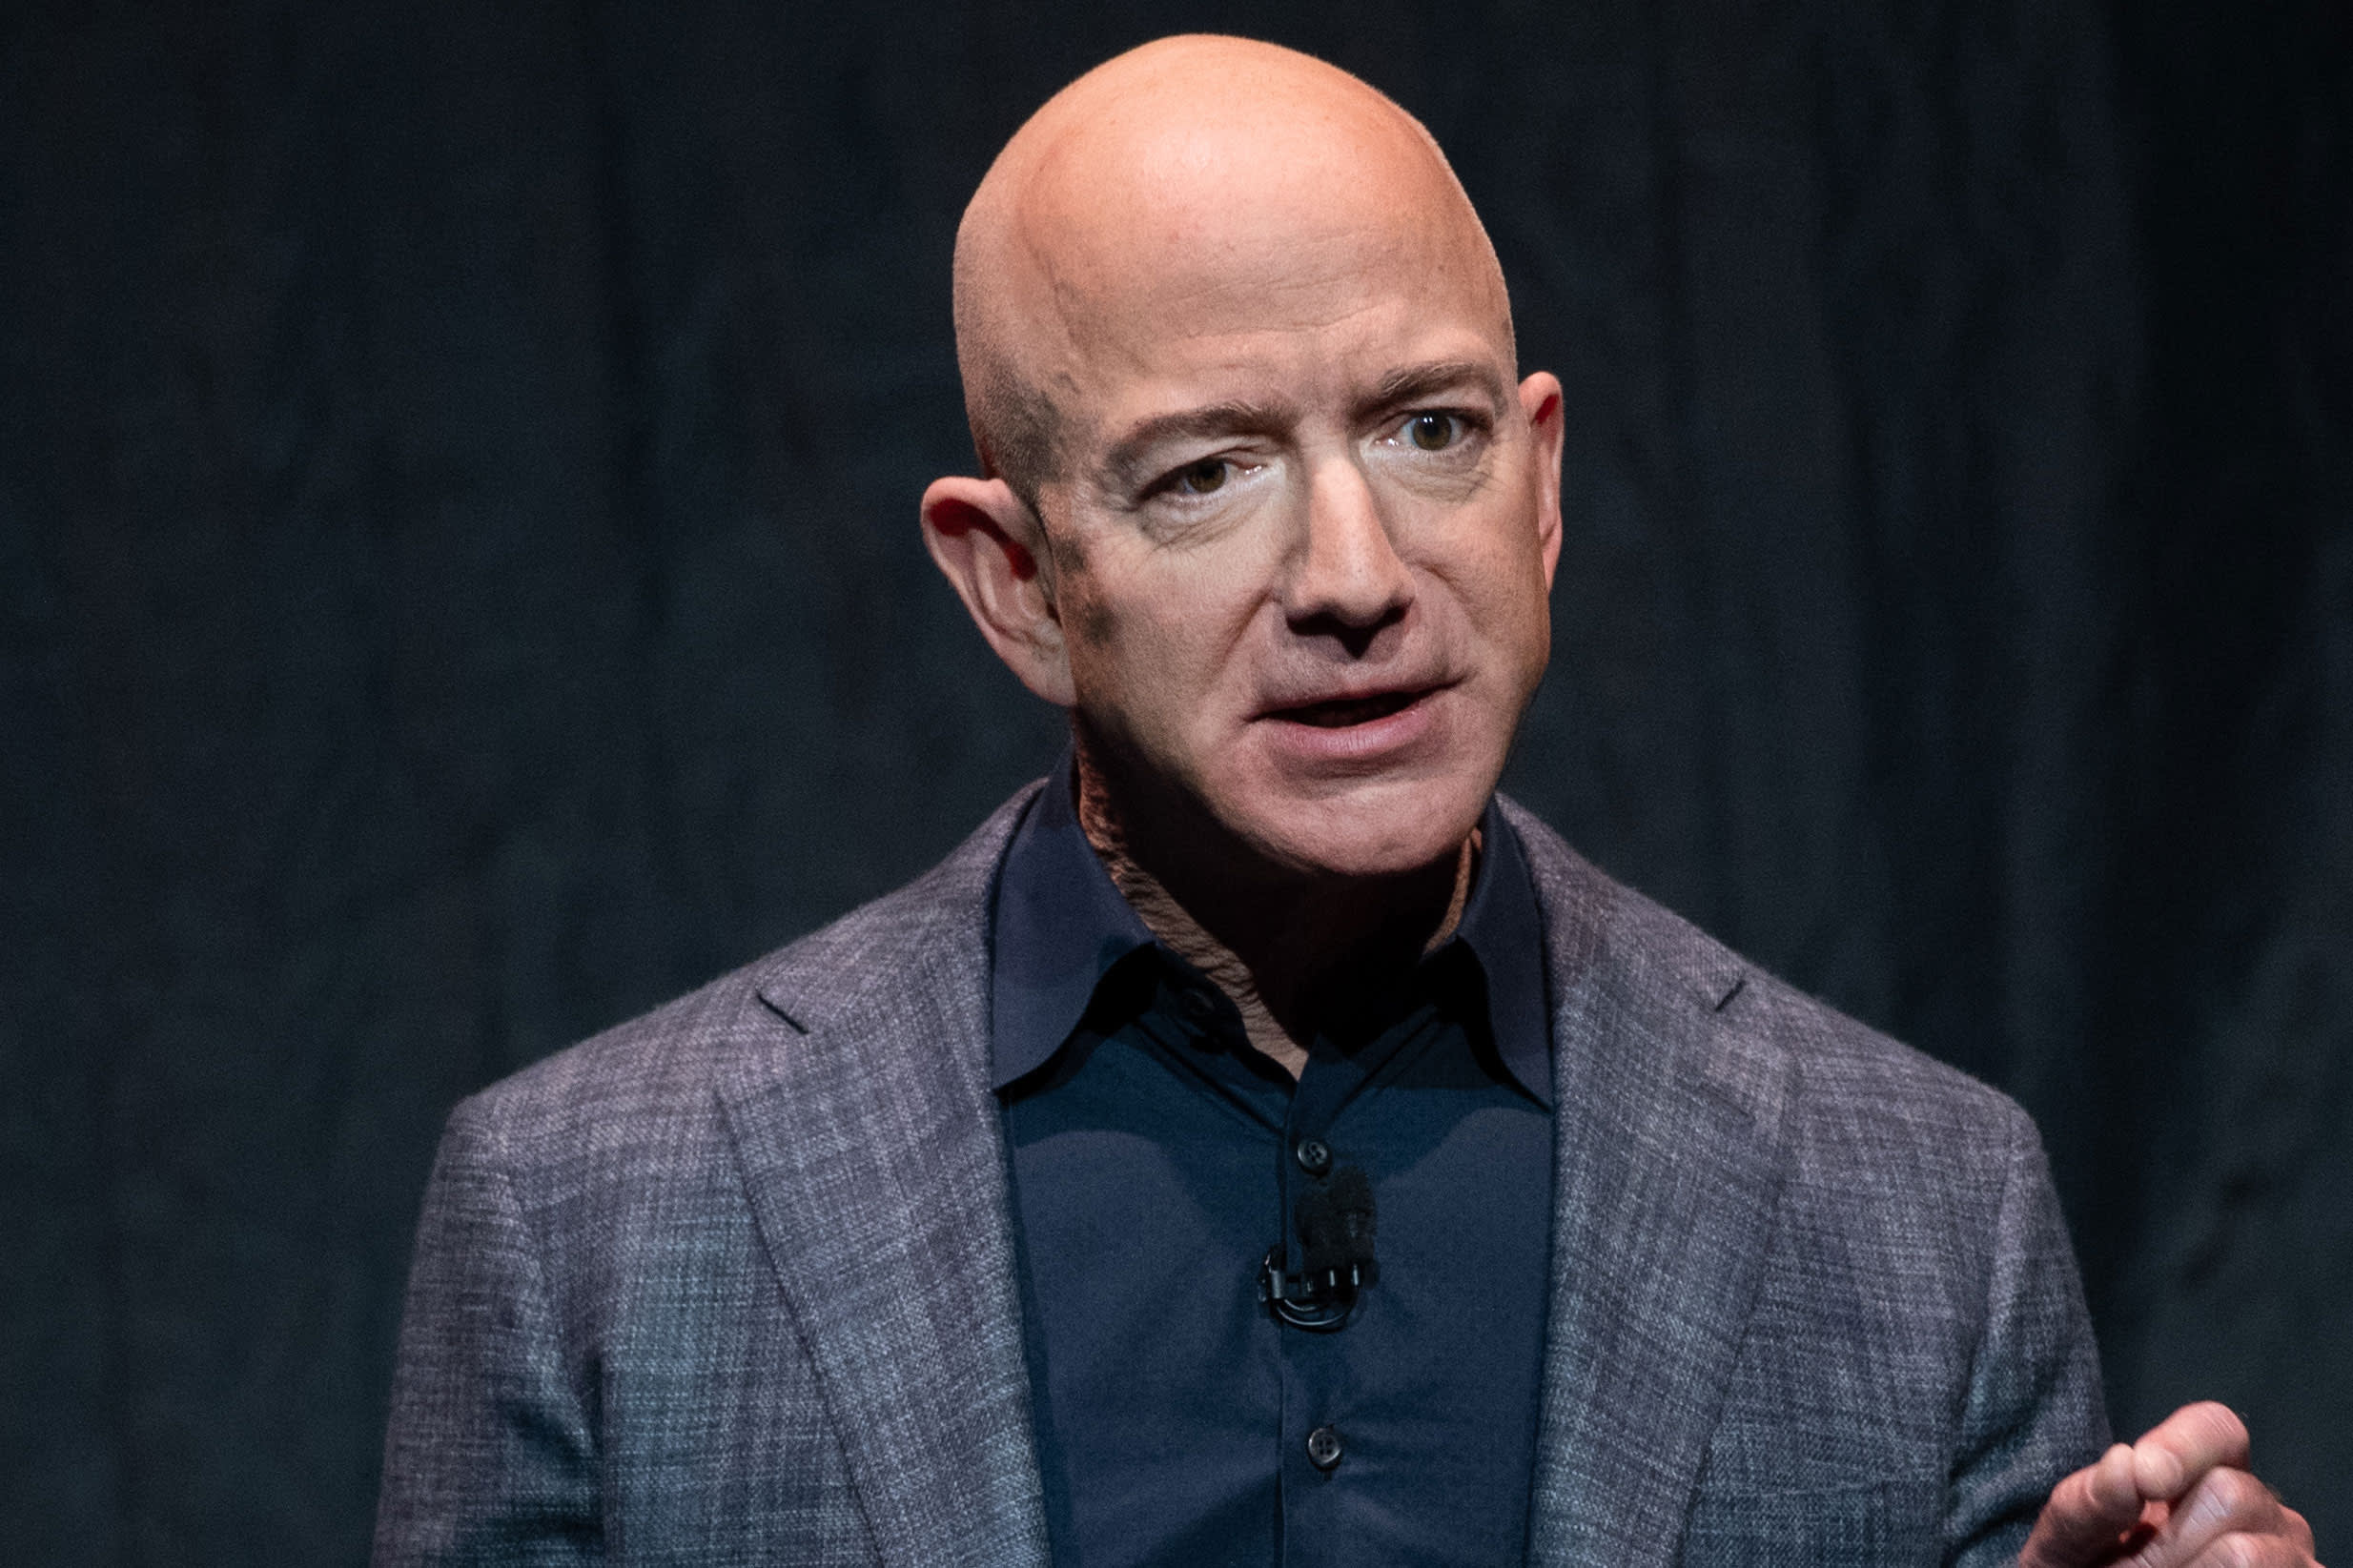 Jeff Bezos interrupted by protester, says space exploration is necessary to 'save the Earth'